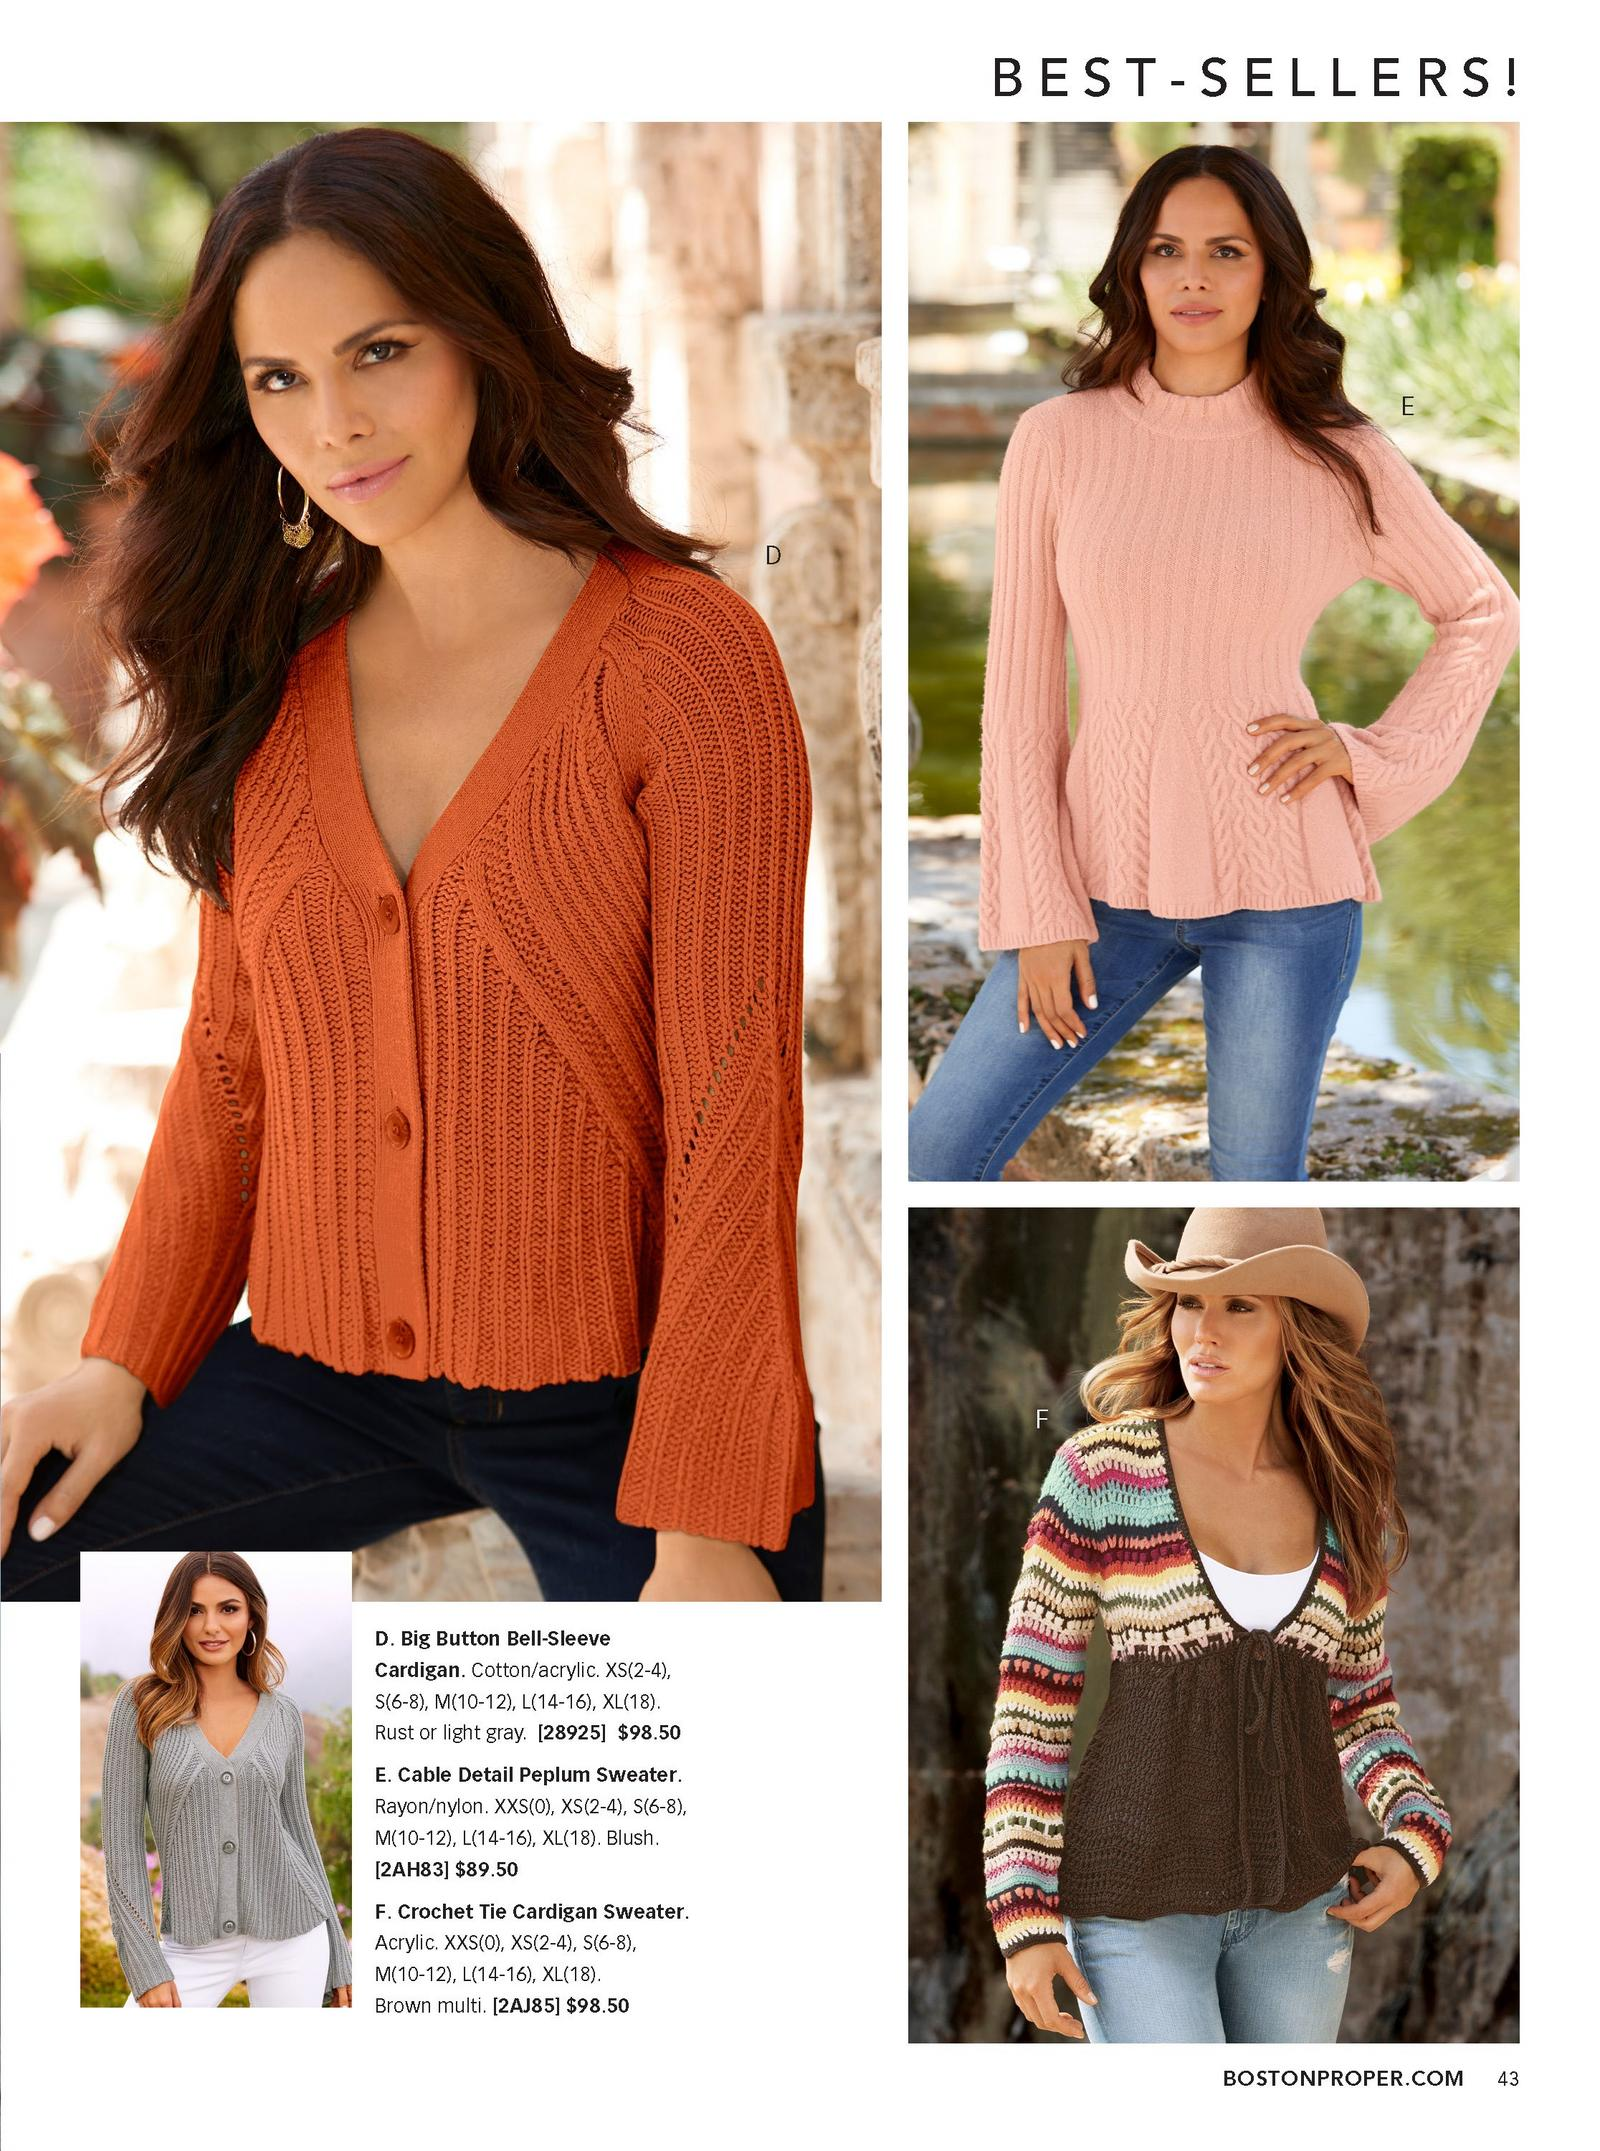 left: model wearing rust colored bell-sleeve cardigan. top right: pink peplum sweater over jeans. bottom right: crochet tie cardigan sweater over ripped jeans.